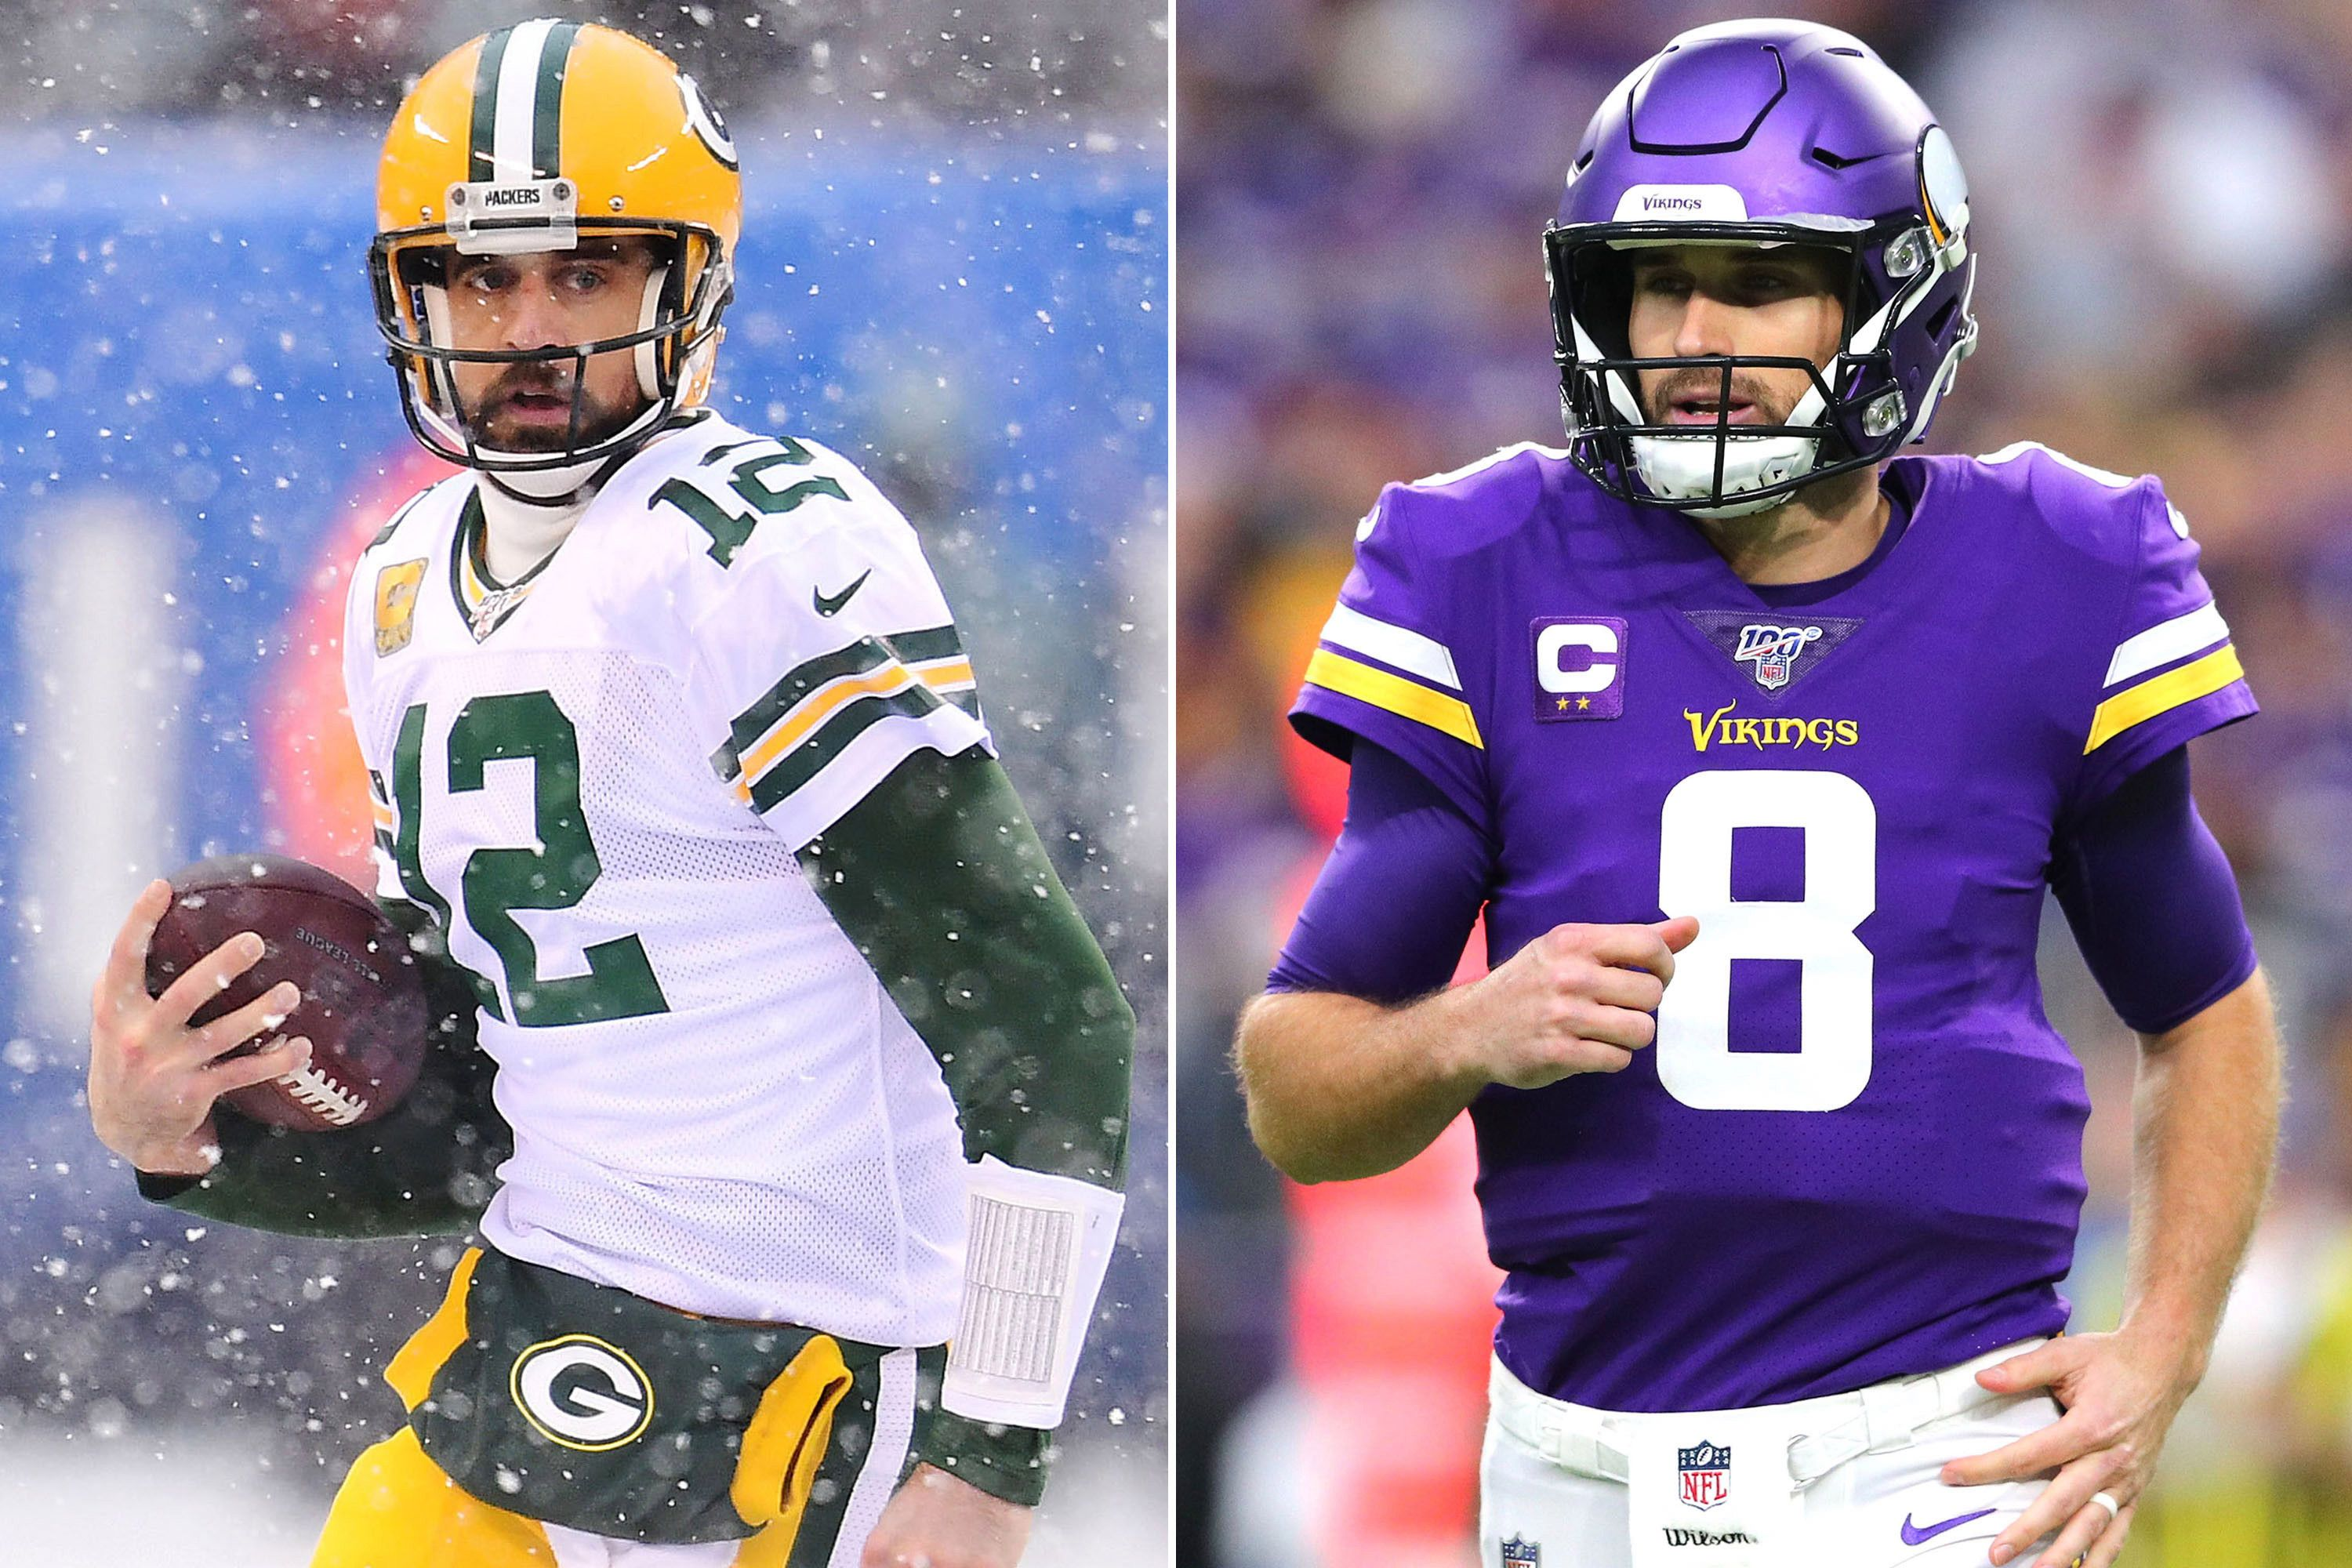 Packers Vikings Has All The Makings Of A Big Time Showdown National Football League News The Stake National Football National Football League Football League